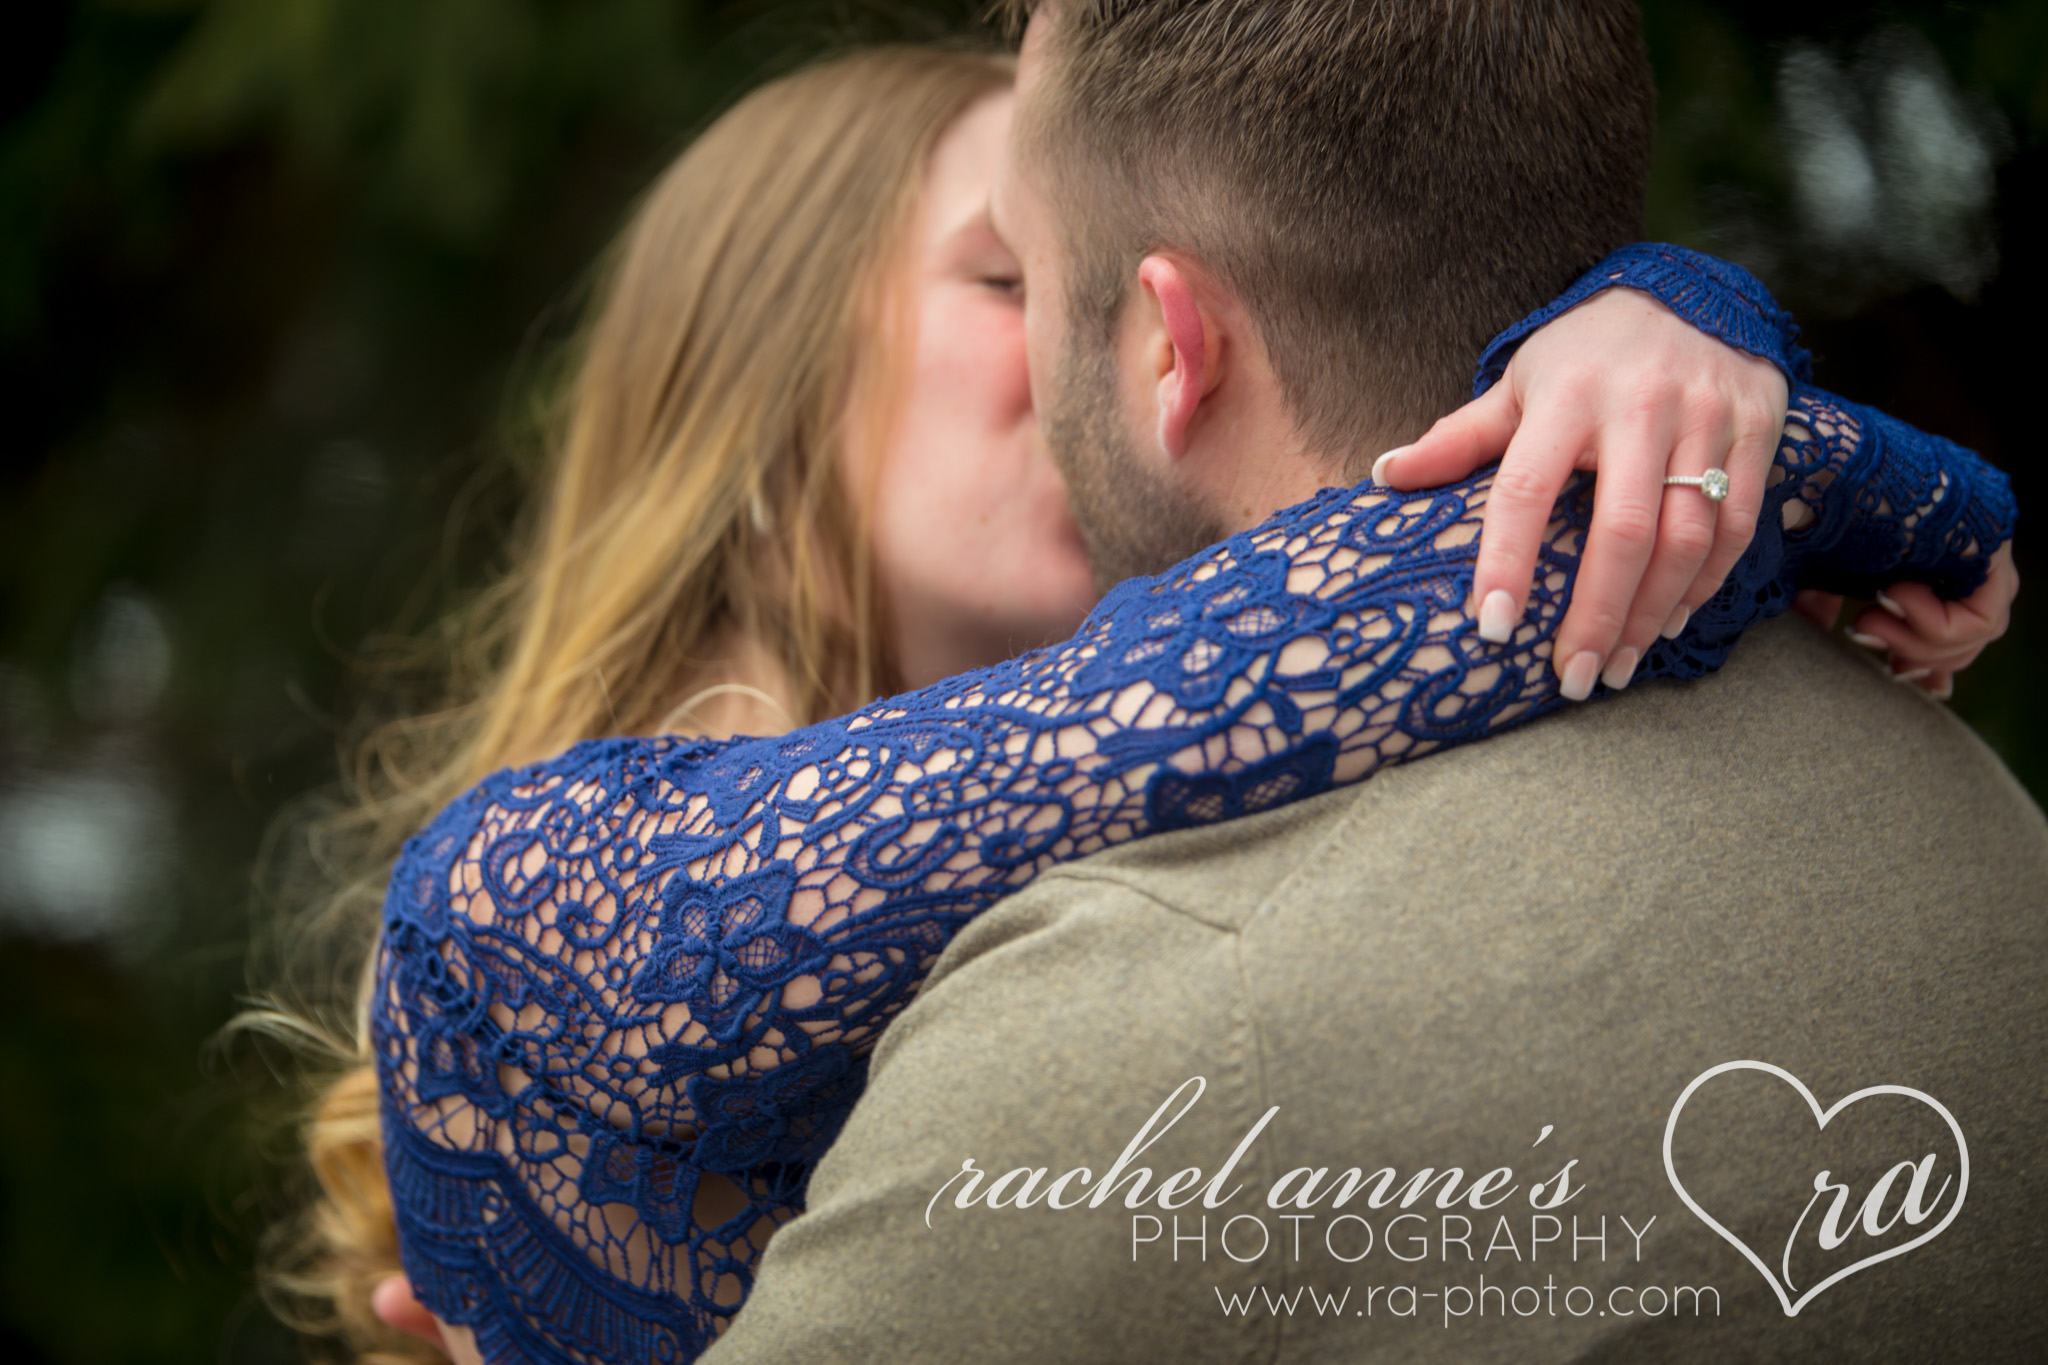 067-JKM-DUBOIS-PA-ENGAGEMENT-PHOTOGRAPHY.jpg